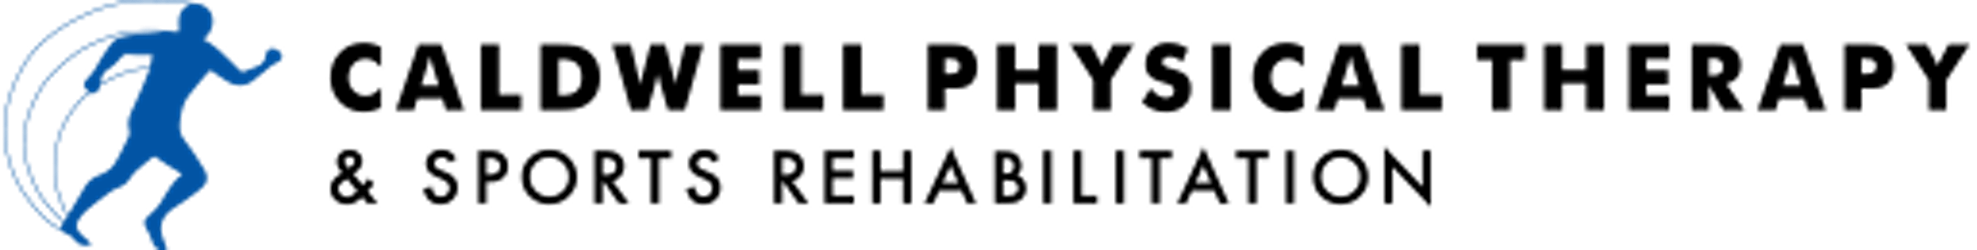 Caldwell Physical Therapy & Sports Rehabilitation